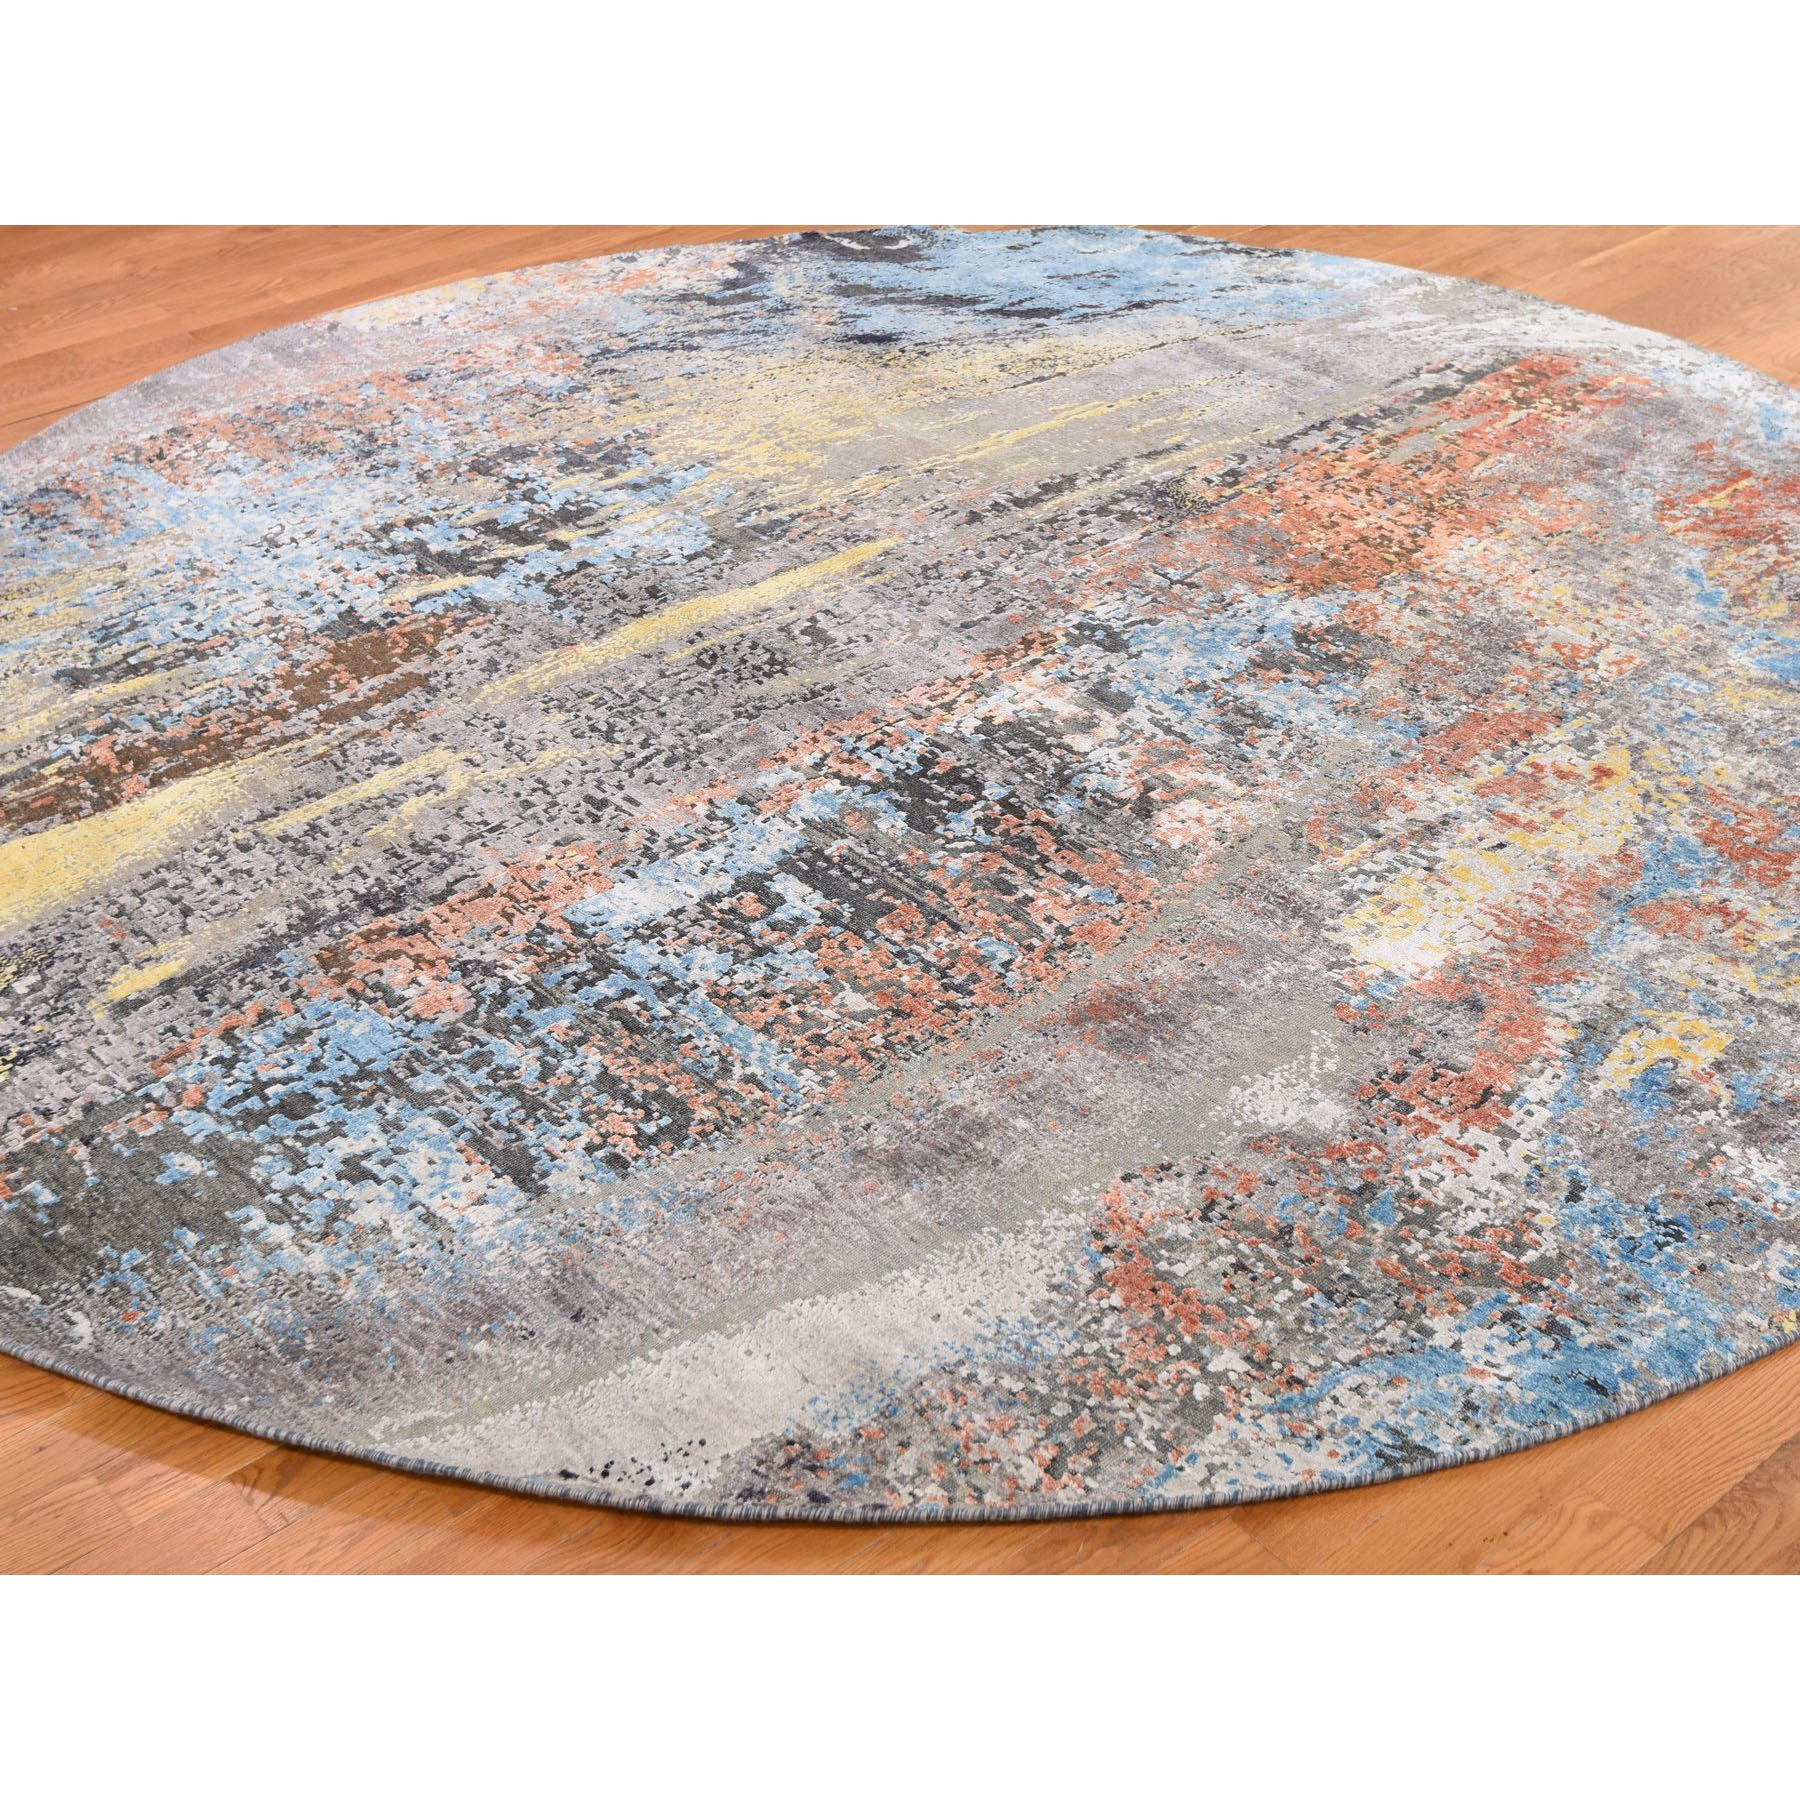 """10'1""""x10'1"""" Round Wool And Silk Hi-Low Pile Abstract Design Hand Knotted Rug"""